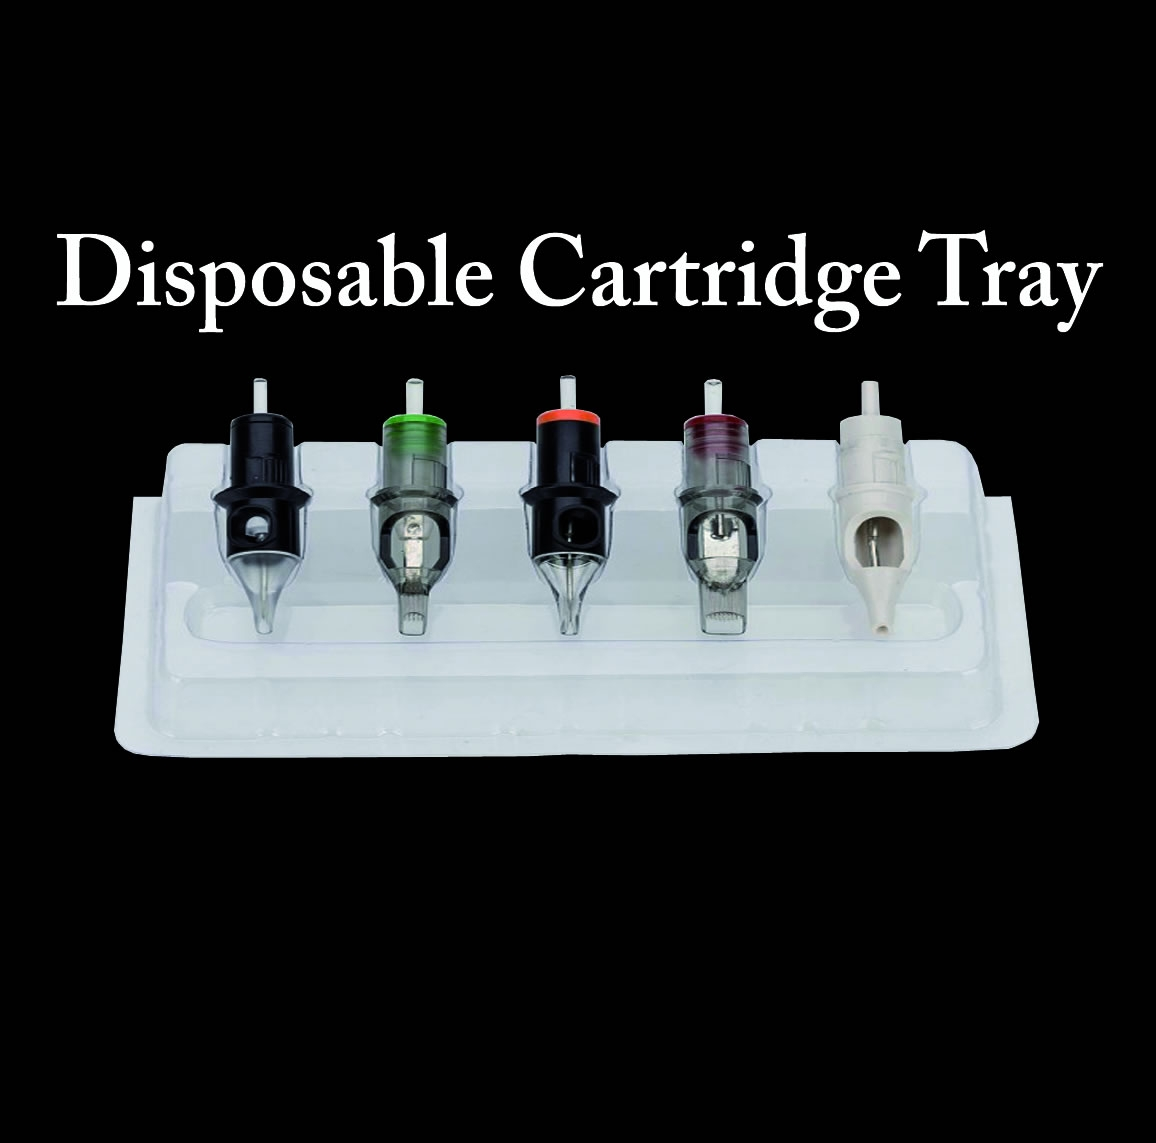 Disposable Cartridge Tray 20 pcs.